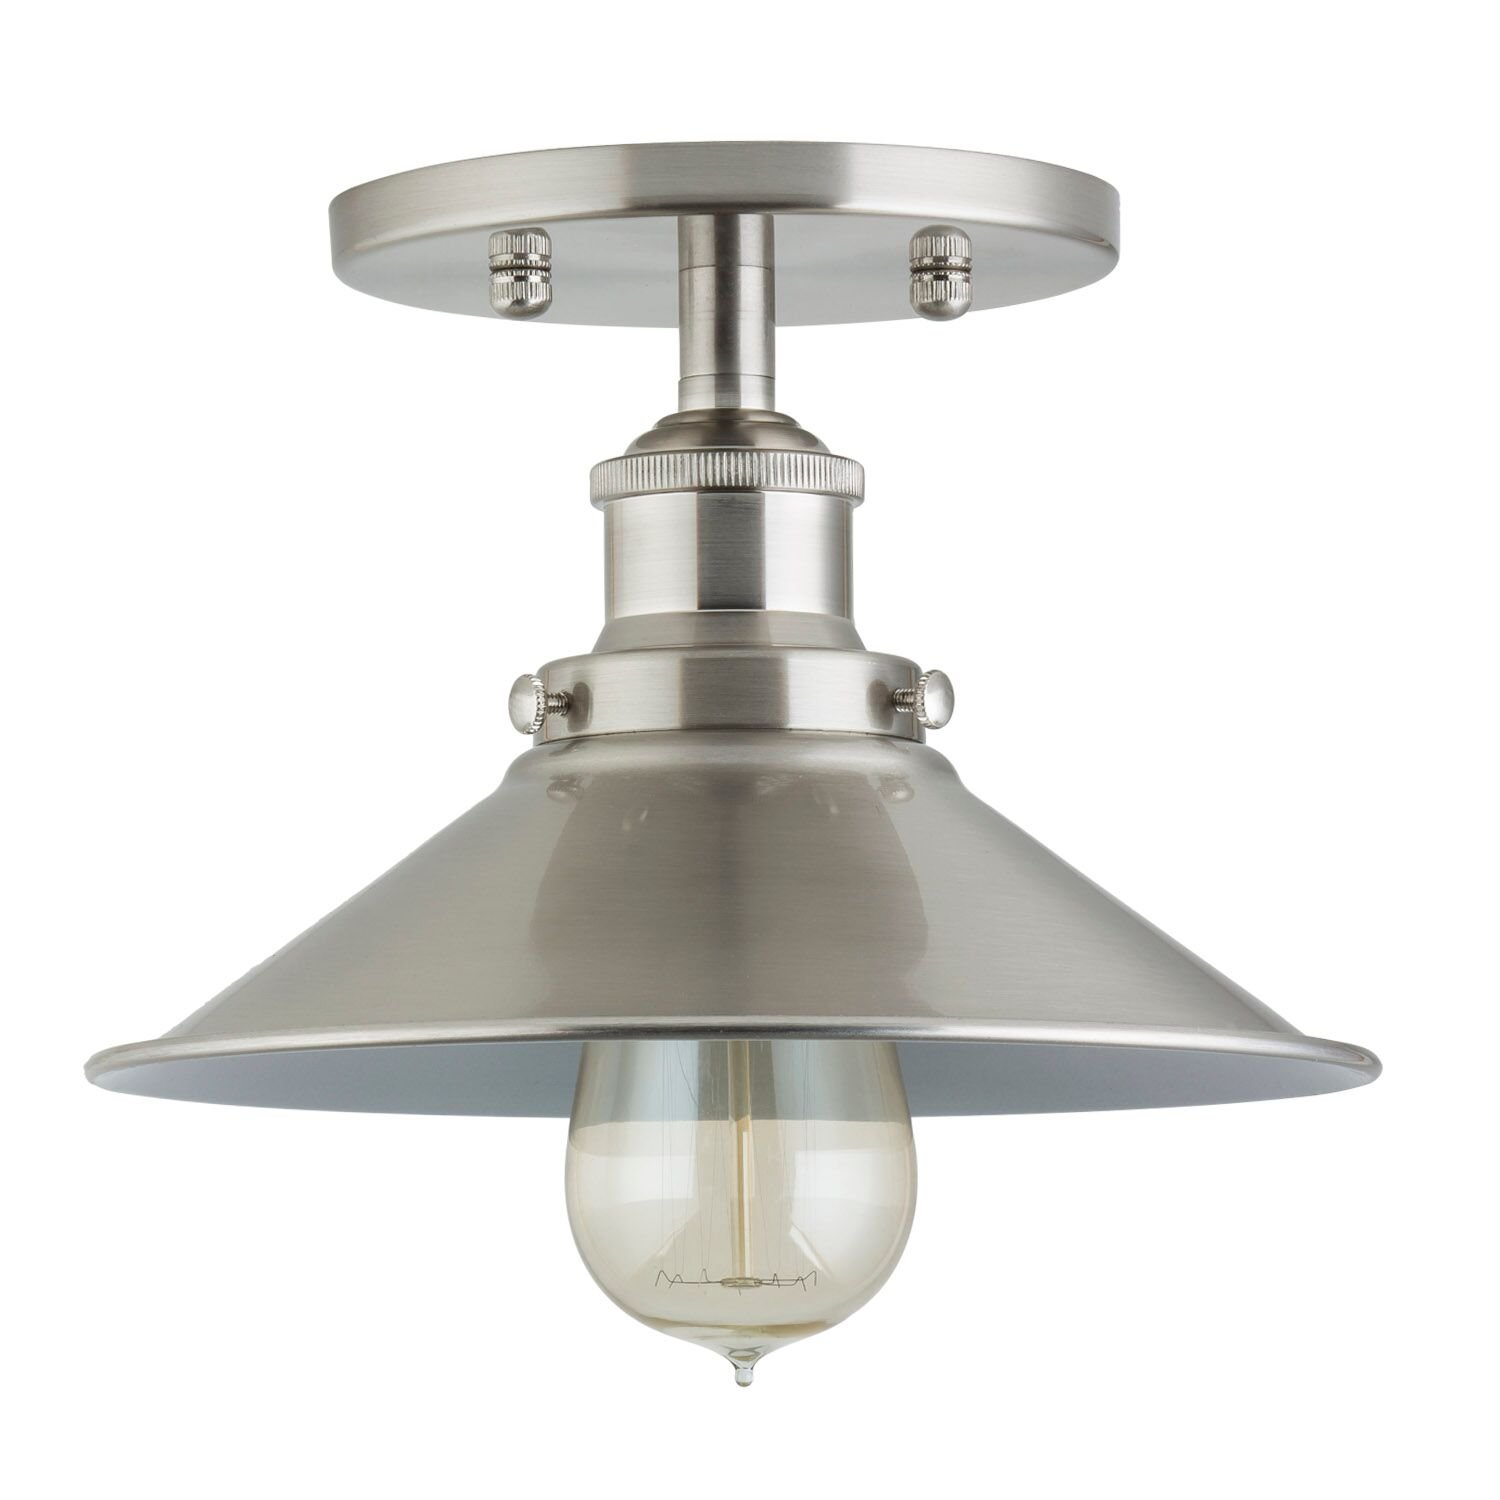 Andante industrial vintage ceiling light fixture brushed nickel semi flush mount ceiling light ll c407 bn amazon com